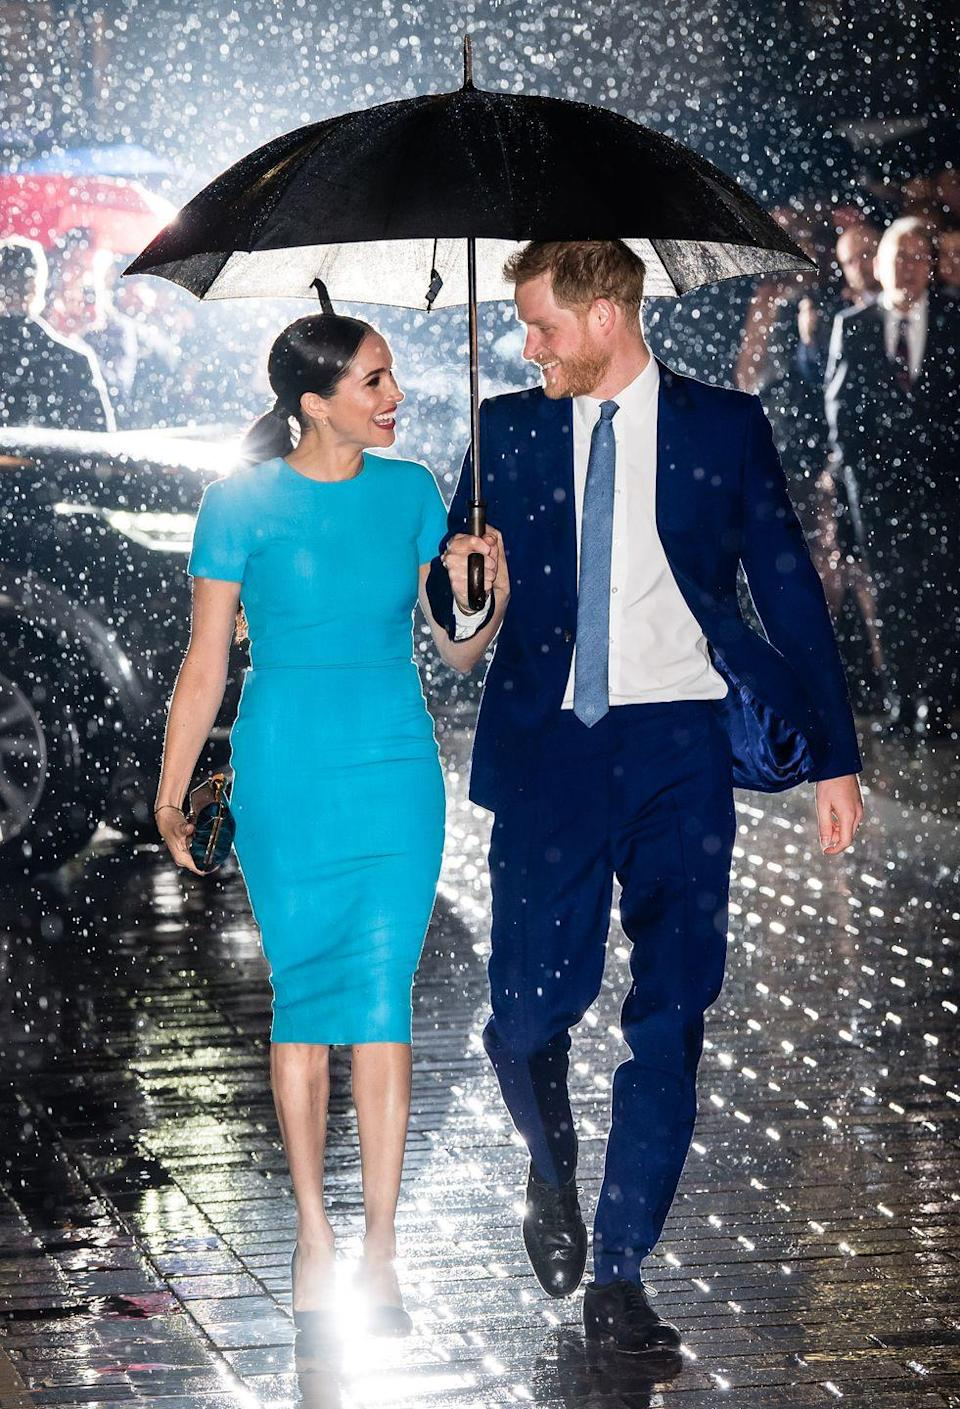 """<p>When Meghan Markle returned to the spotlight at the Endeavour Fund Awards in London, after weeks of staying out of the public eye, one photo seemed to channel the spirit of the evening. This picture of the Sussexes in the rain is already being called """"iconic"""" for how it captured the mood of their farewell tour of the UK. </p><p><strong><a href=""""https://www.townandcountrymag.com/society/tradition/a31290415/meghan-markle-prince-harry-umbrella-photo-endeavour-fund-awards-interview/"""" rel=""""nofollow noopener"""" target=""""_blank"""" data-ylk=""""slk:Read the full story behind the photograph here."""" class=""""link rapid-noclick-resp"""">Read the full story behind the photograph here.</a></strong></p>"""